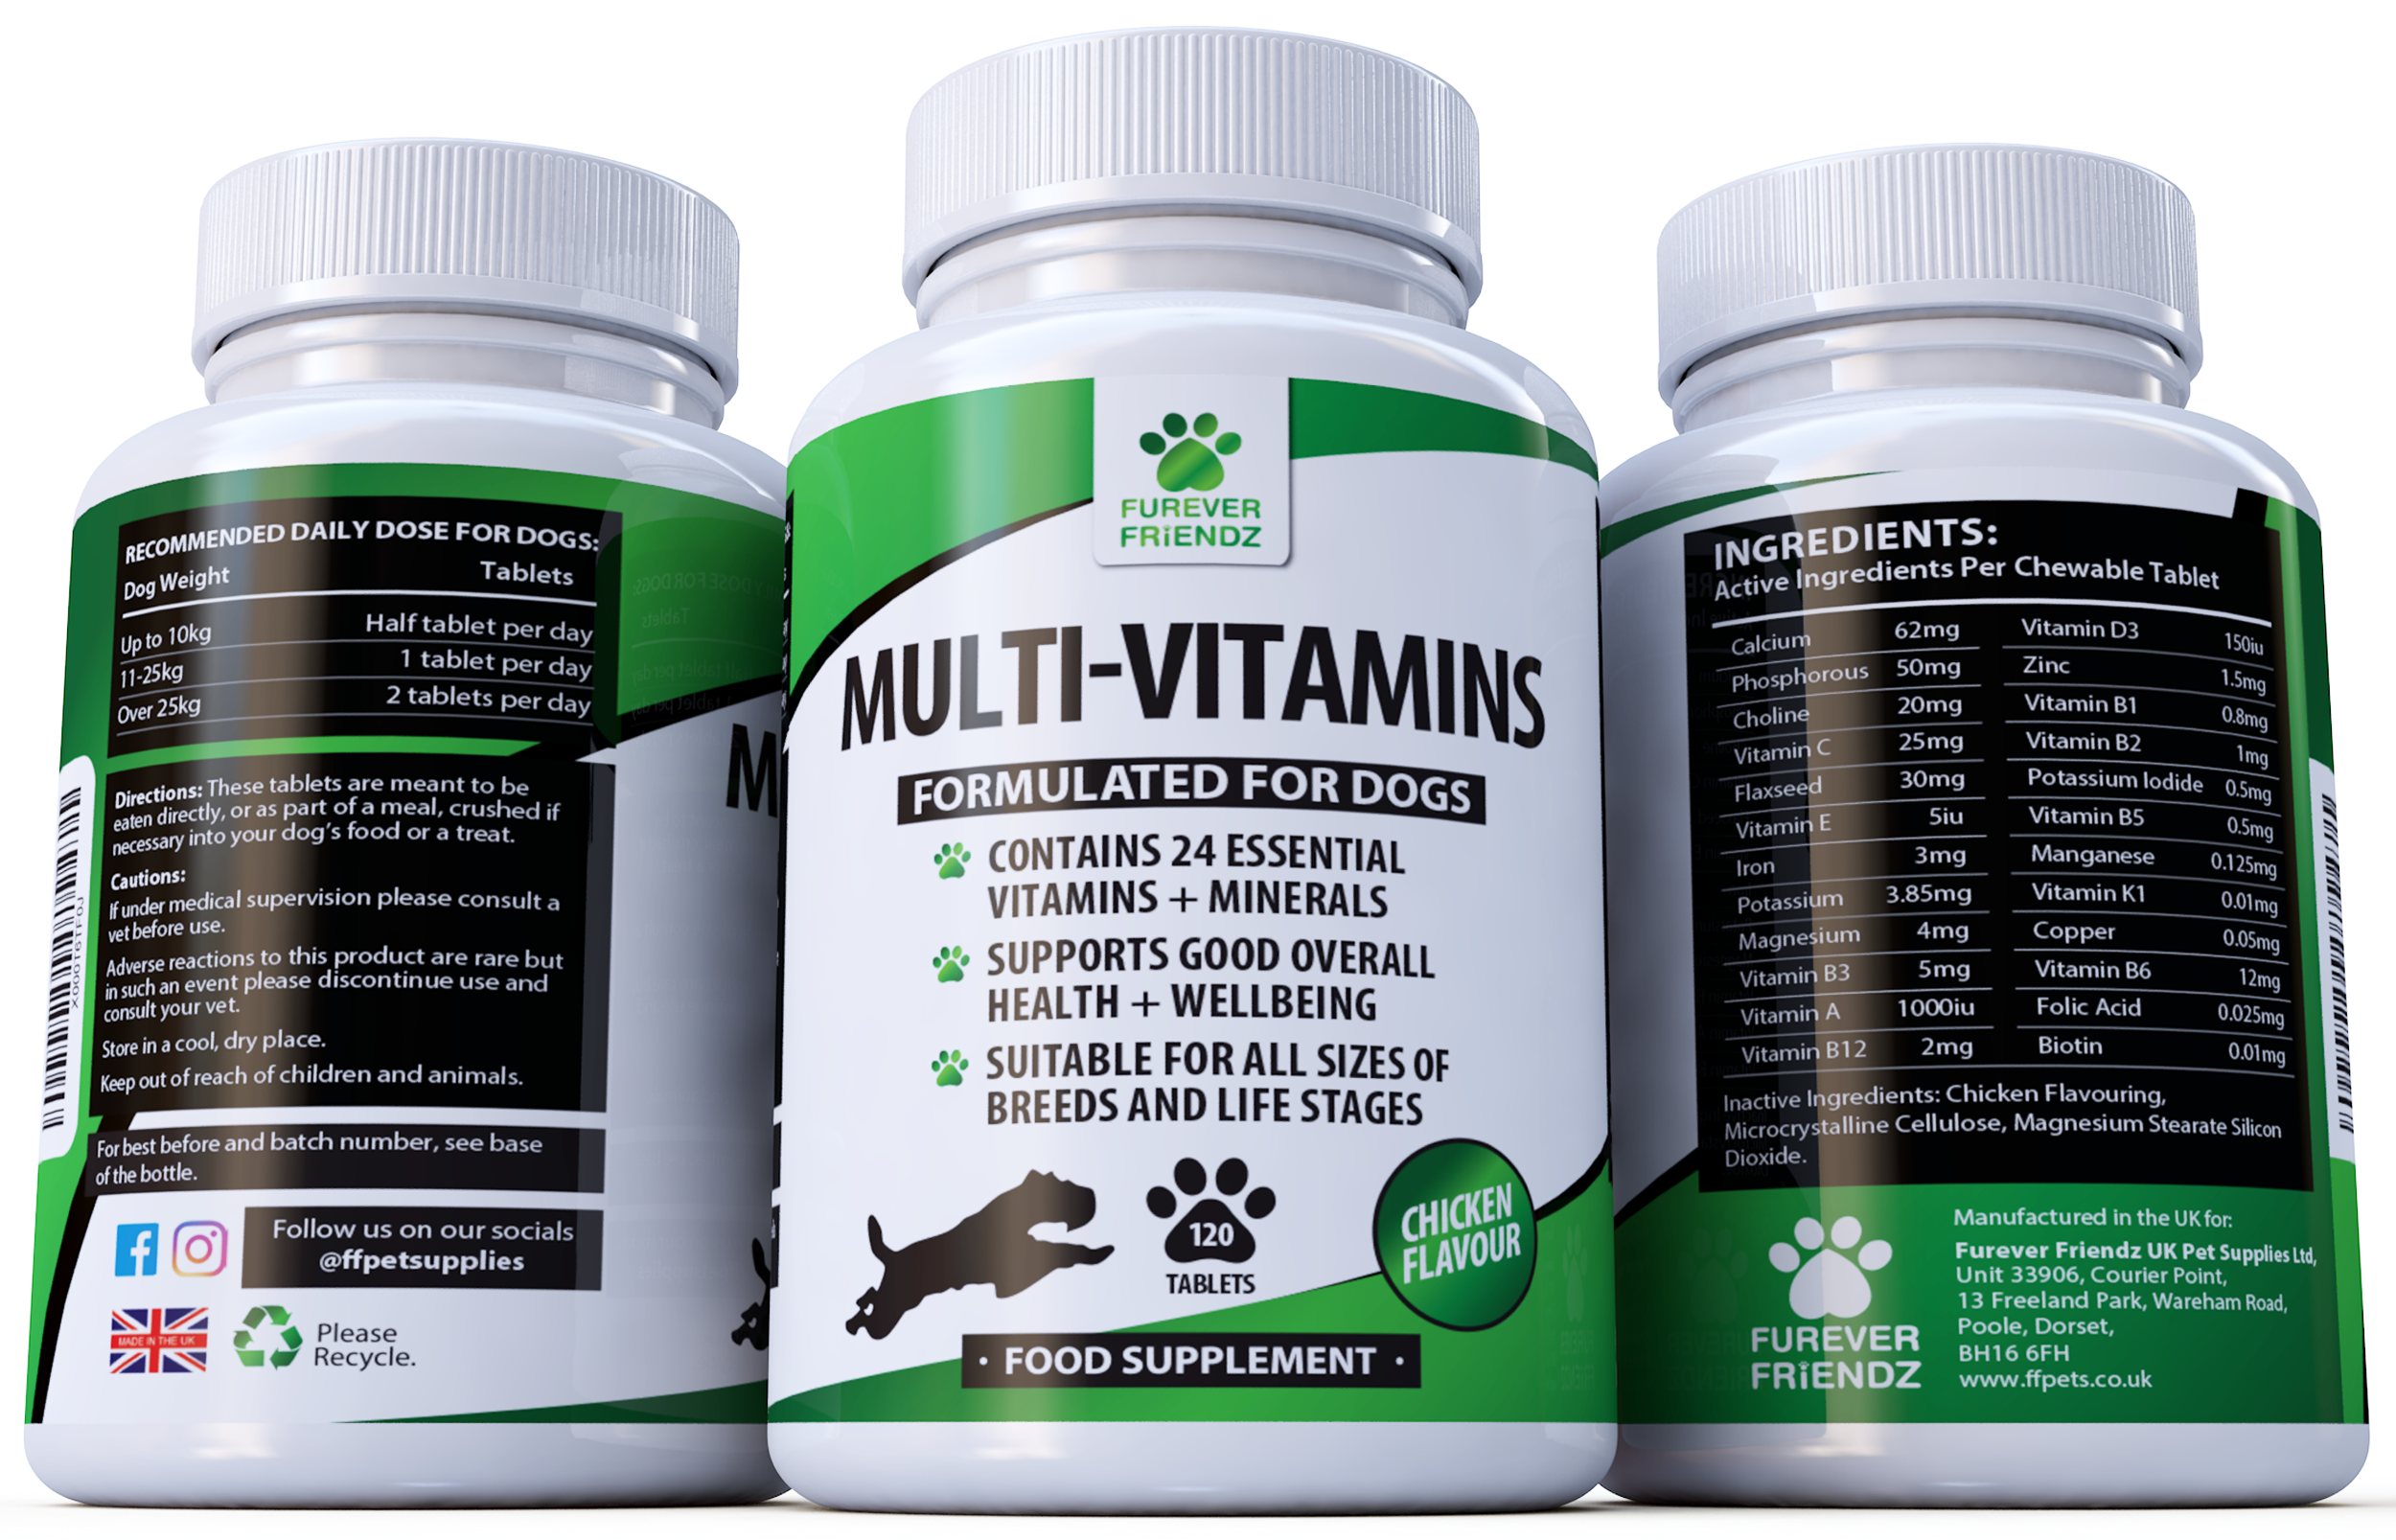 Daily Multi-Vitamins for Dogs: Overall Health & Well-Being (Chicken Flavour Tablets)